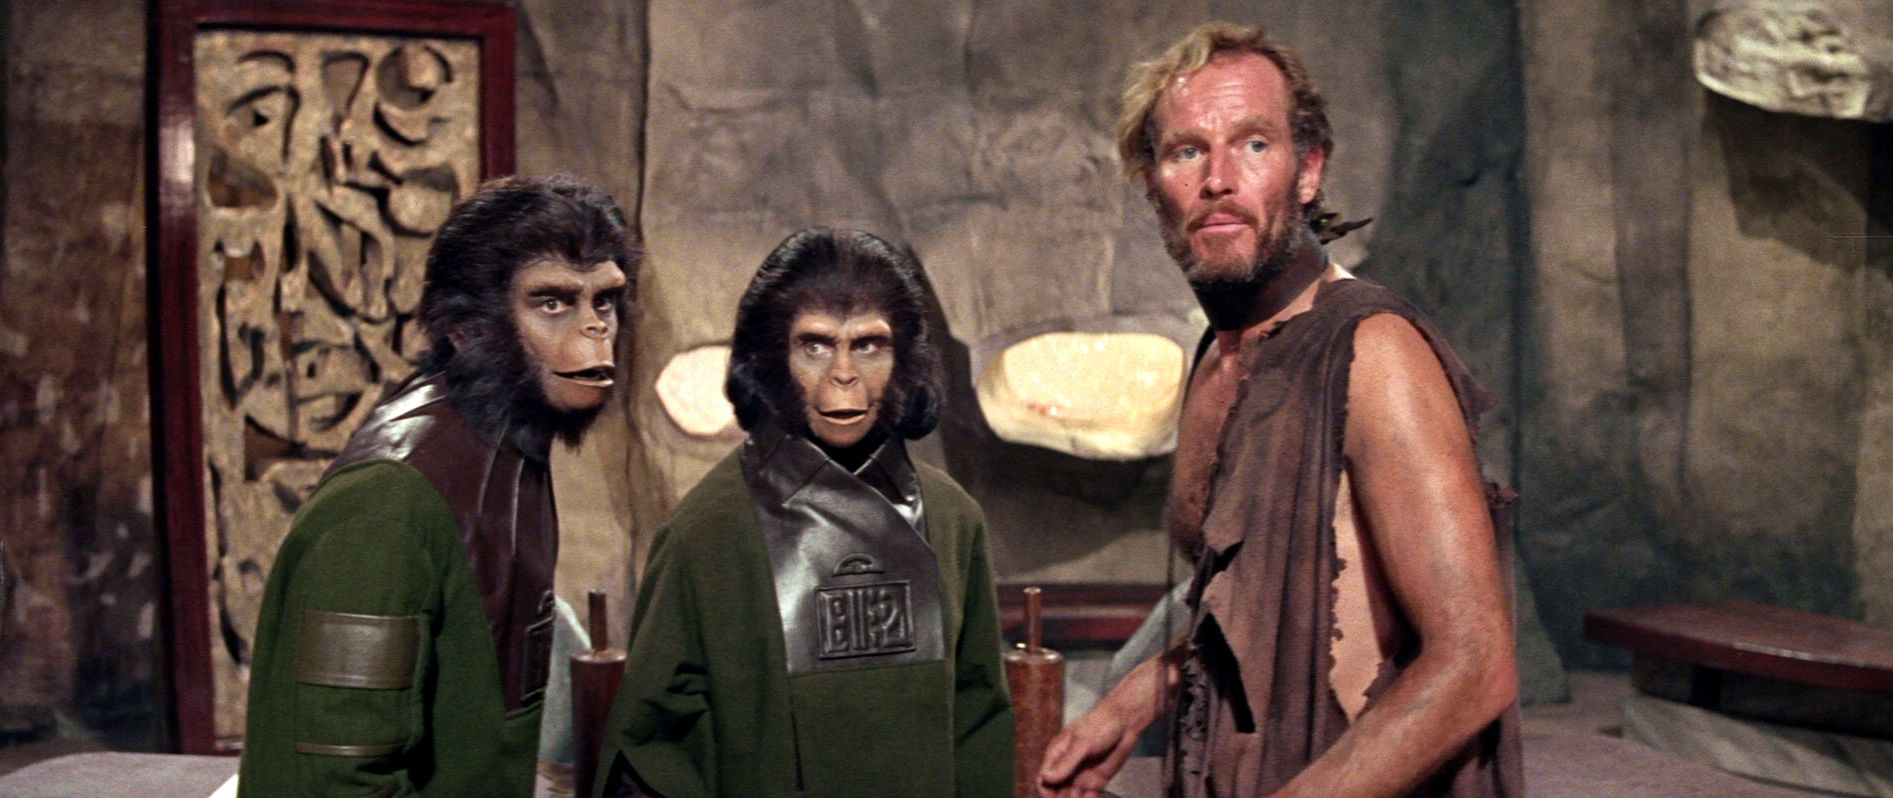 Religion and Planet of the Apes (1968) | Reel Antagonist